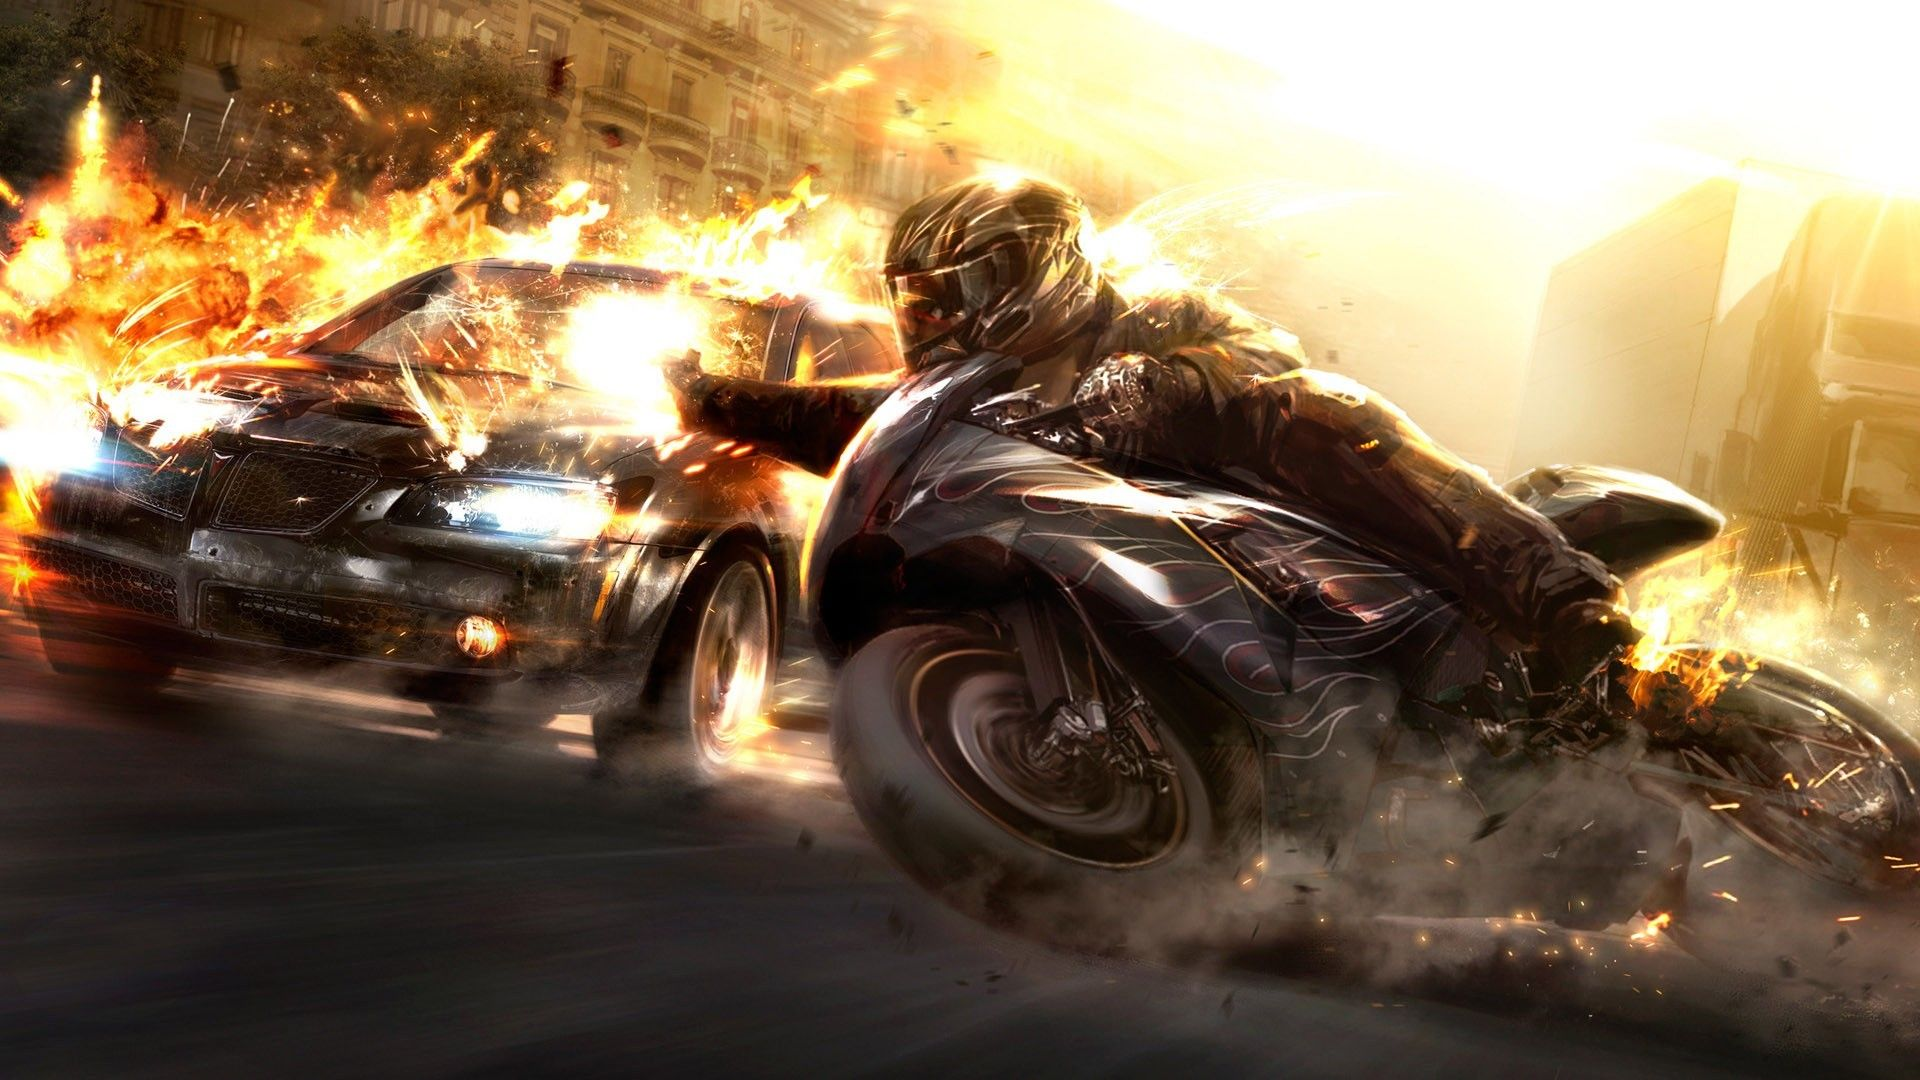 Hd need for speed wallpaper uncategorized for hd need hd need for speed wallpaper uncategorized for hd need speed httpwallautoshd need for speedml voltagebd Choice Image